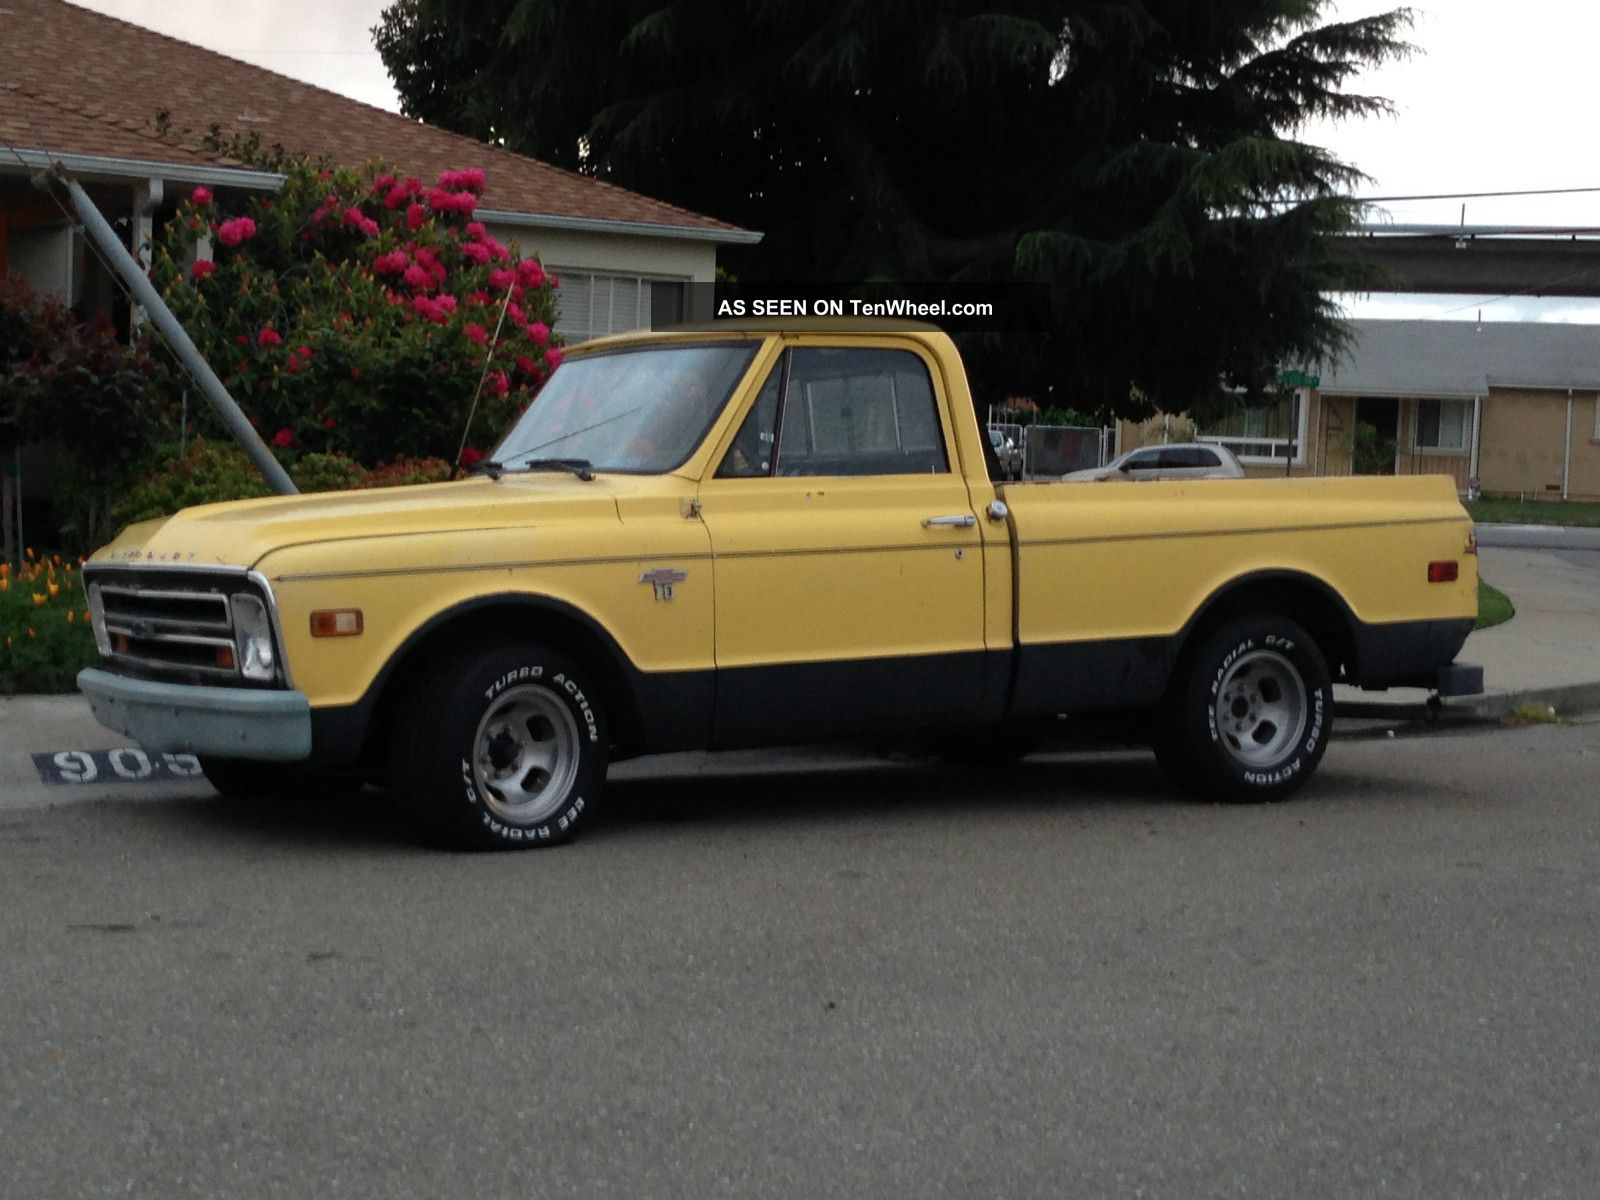 1968 Chevy C10 Short Bed Pickup 350 4spd, , C-10 photo